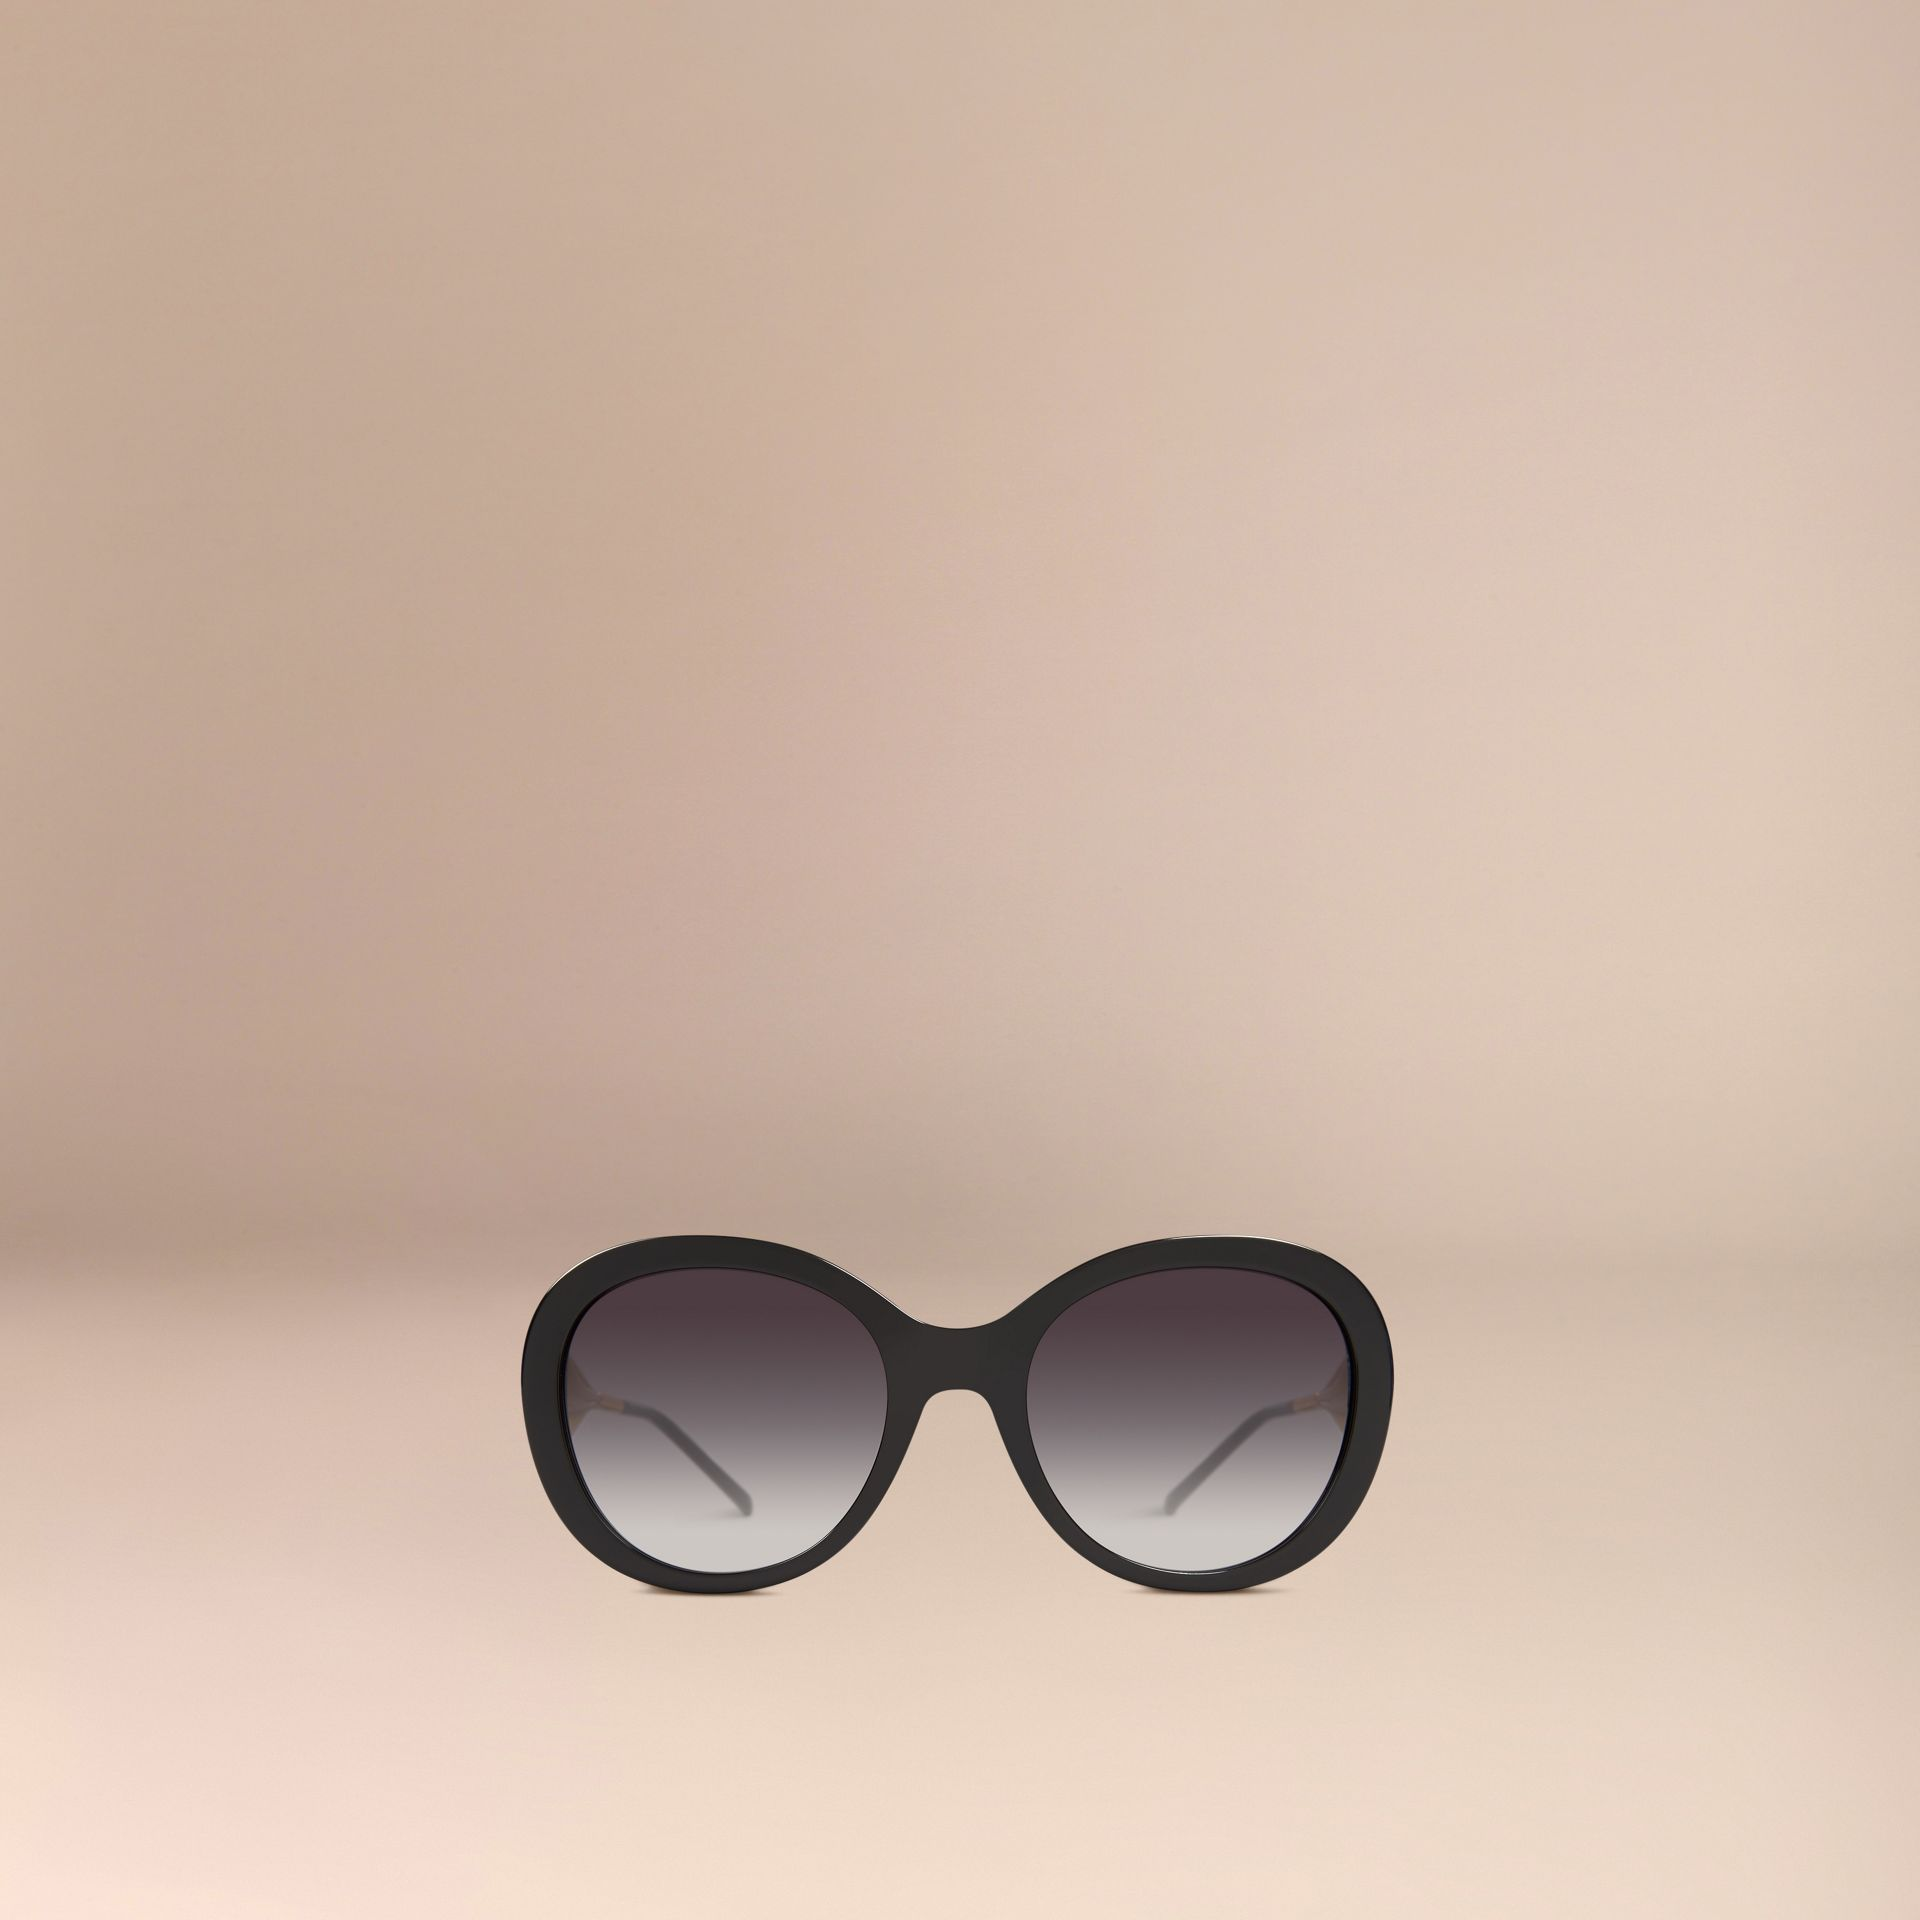 Gabardine Collection Oversize Round Frame Sunglasses in Black - Women | Burberry United States - gallery image 3